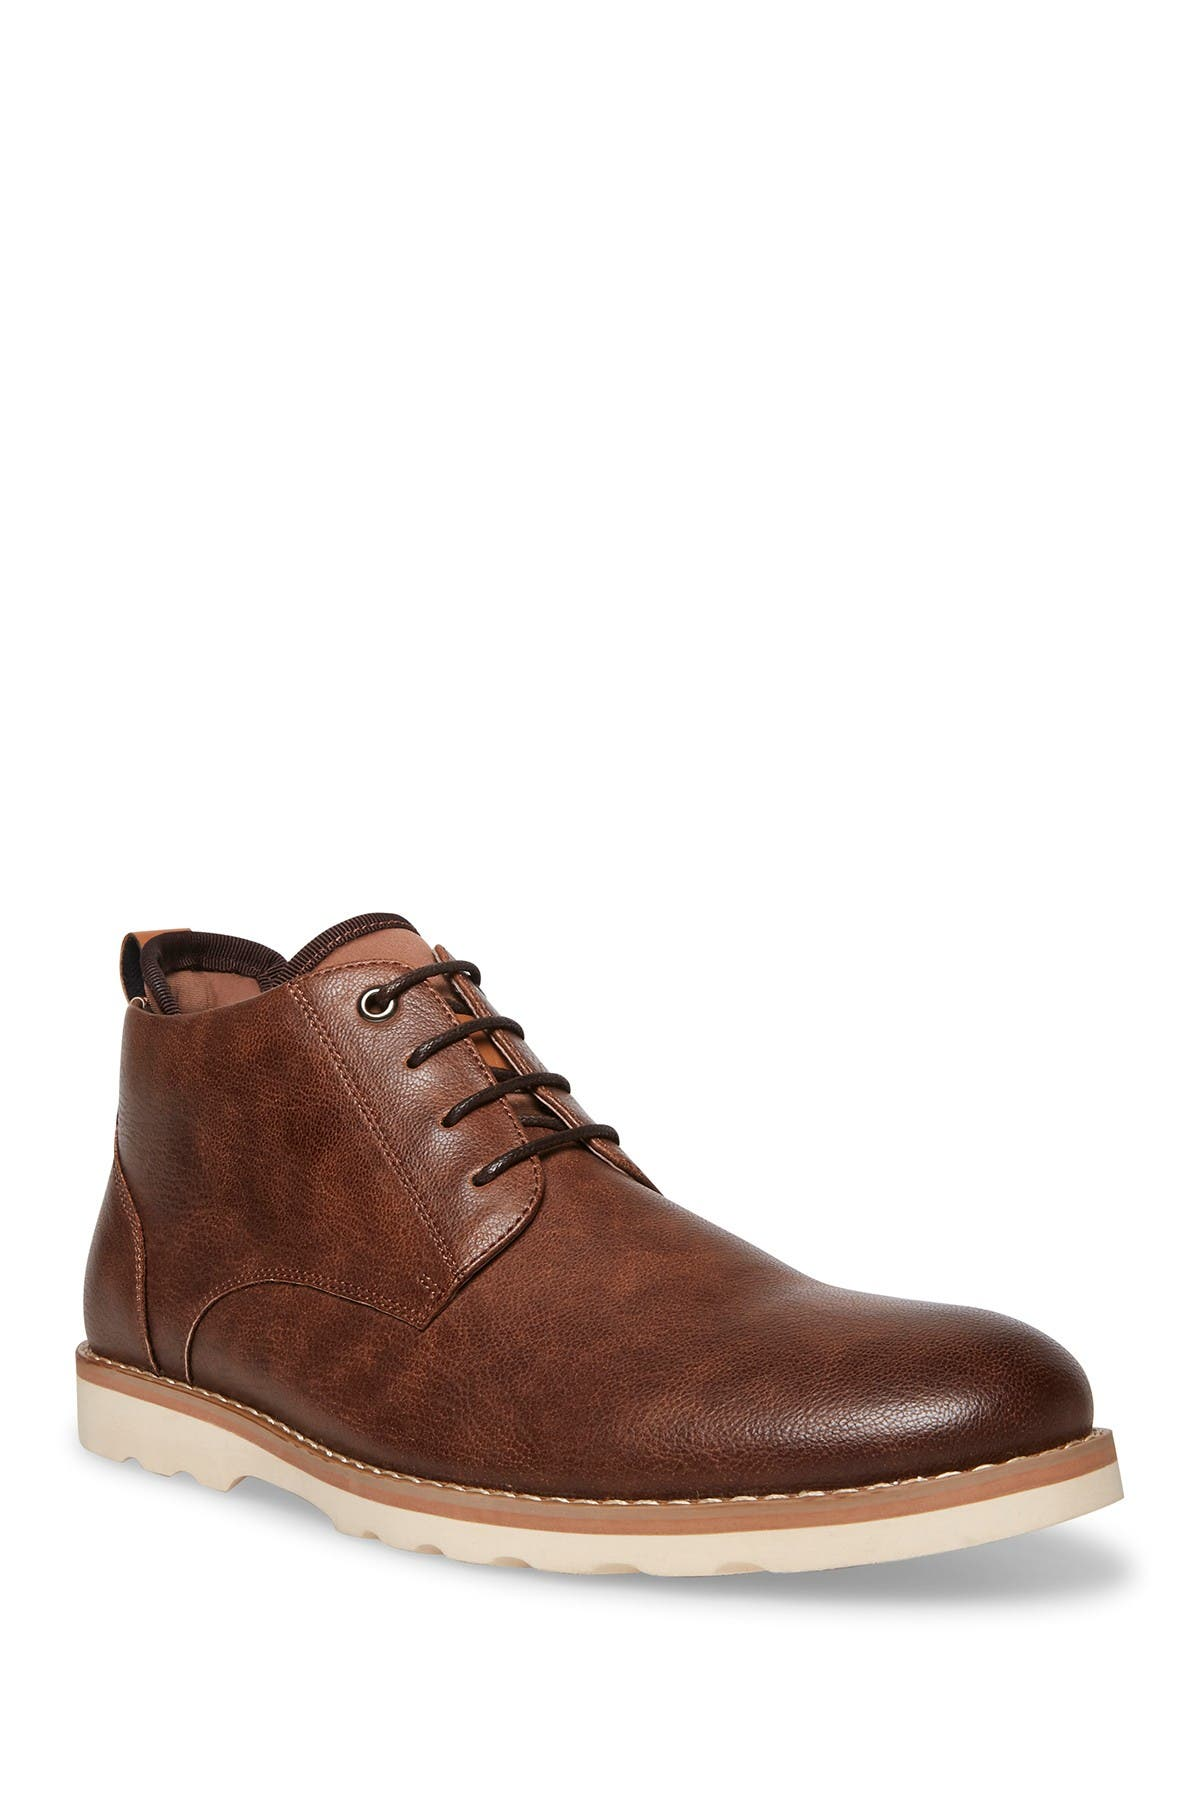 Image of Madden Bulit Lace-Up Boot